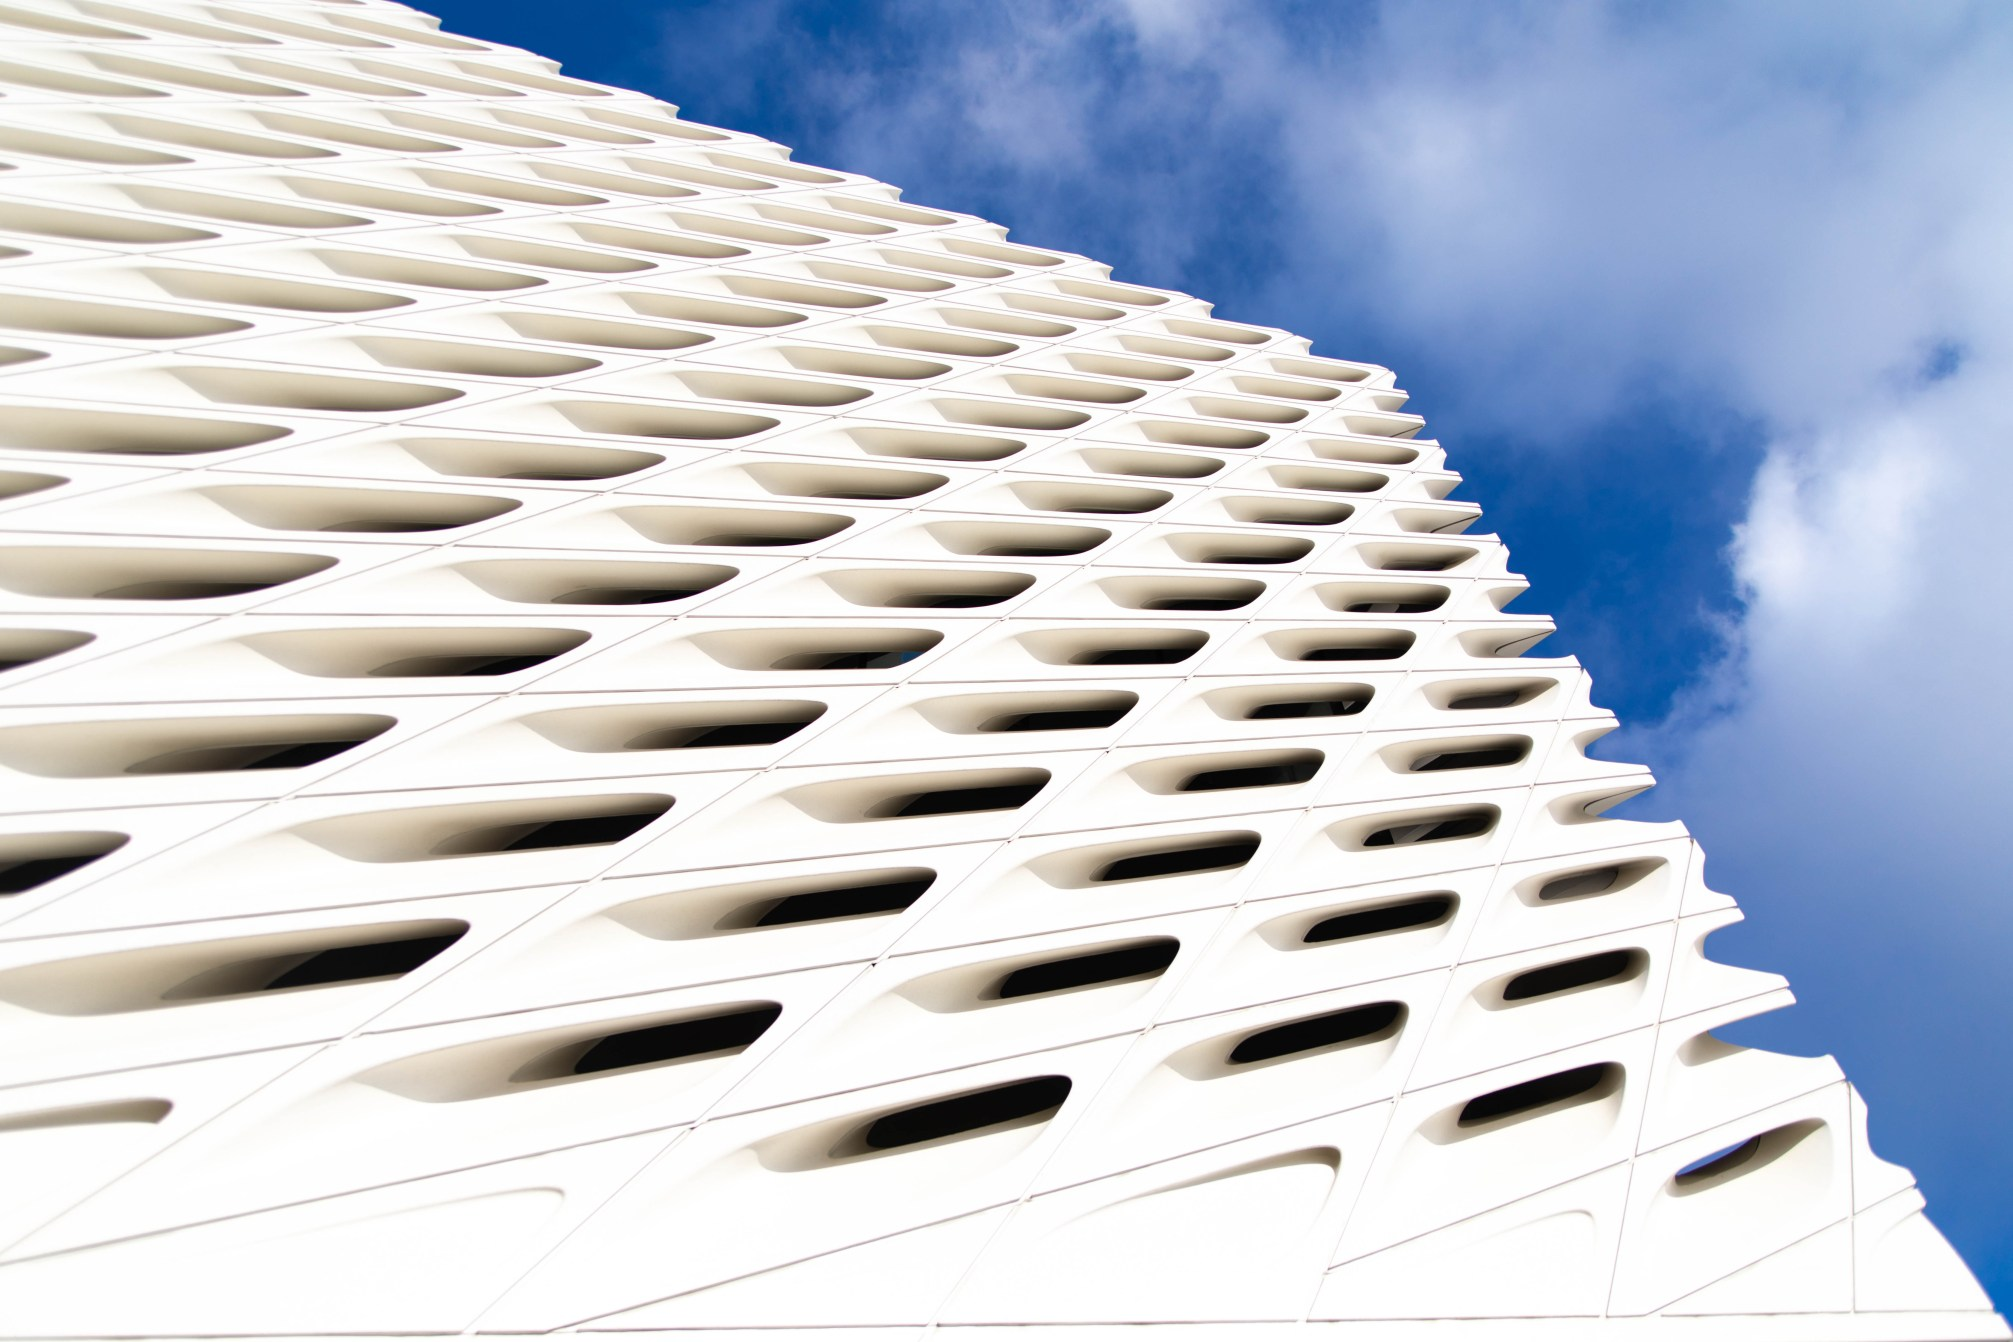 The Complete Guide to The Broad Museum in Los Angeles